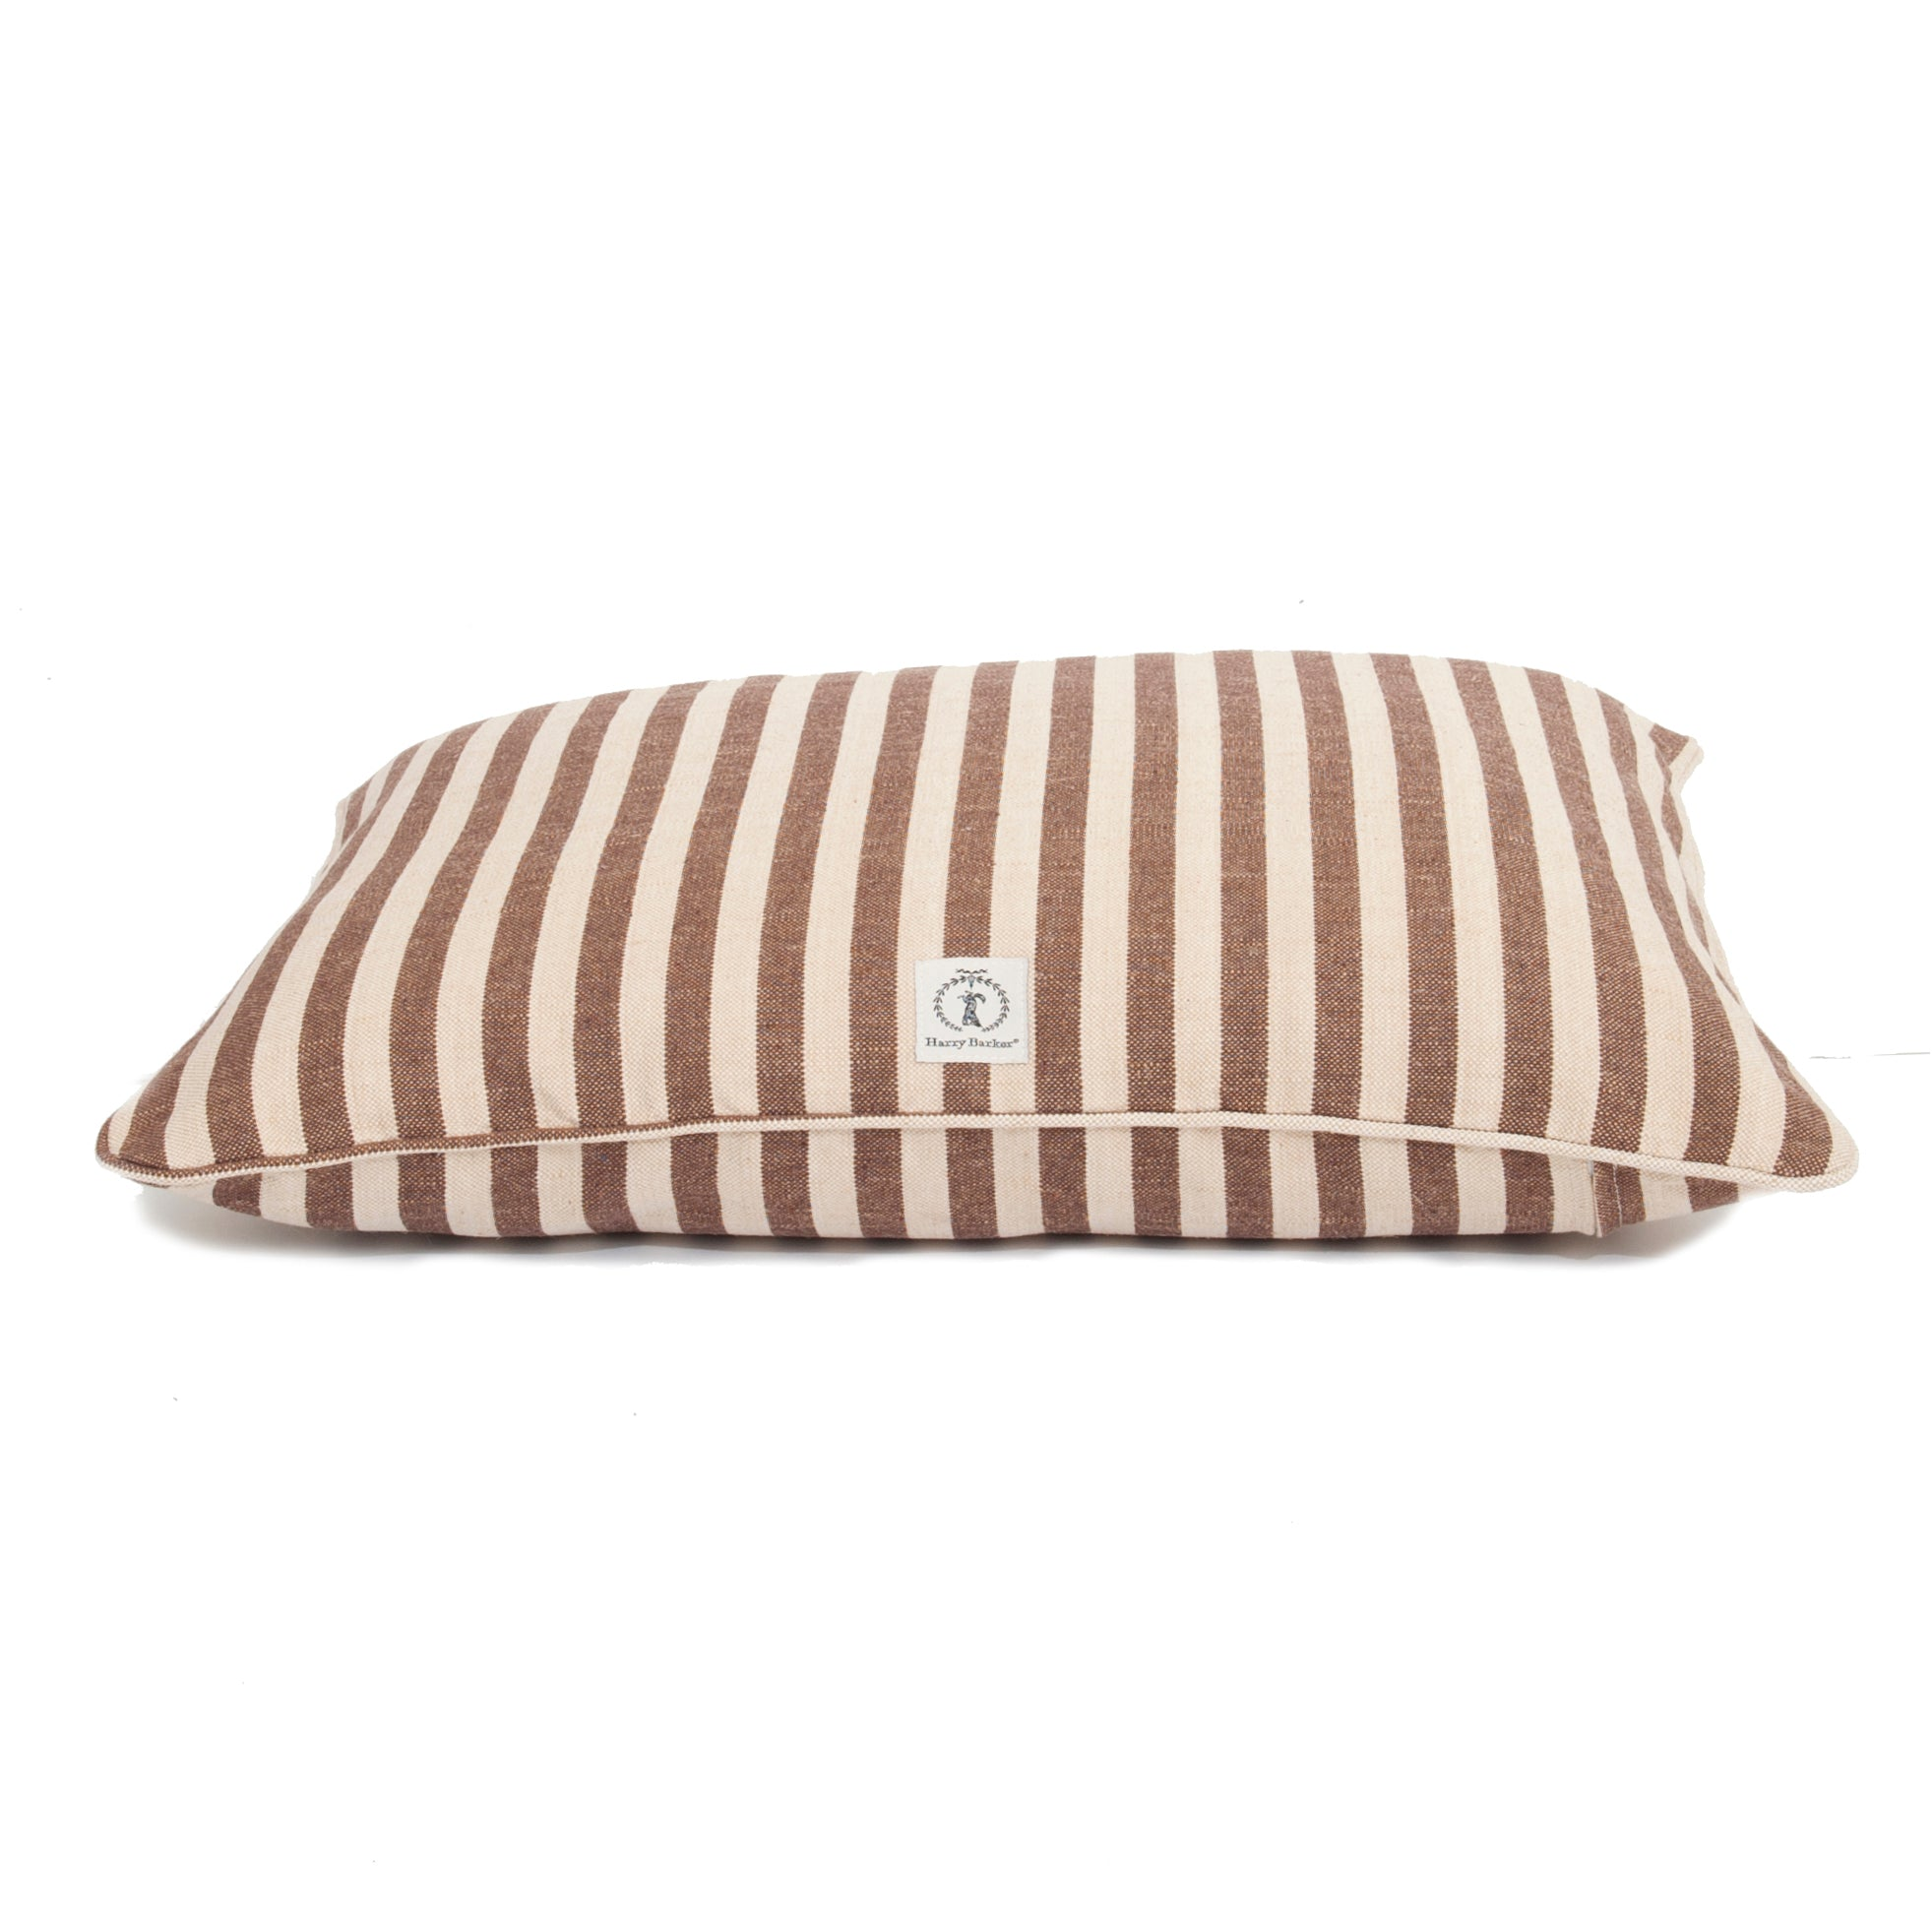 "Rectangle Hemp Replacement - ""COVER ONLY"" - Vintage Stripe - Dog Bed - 5 Color Options"